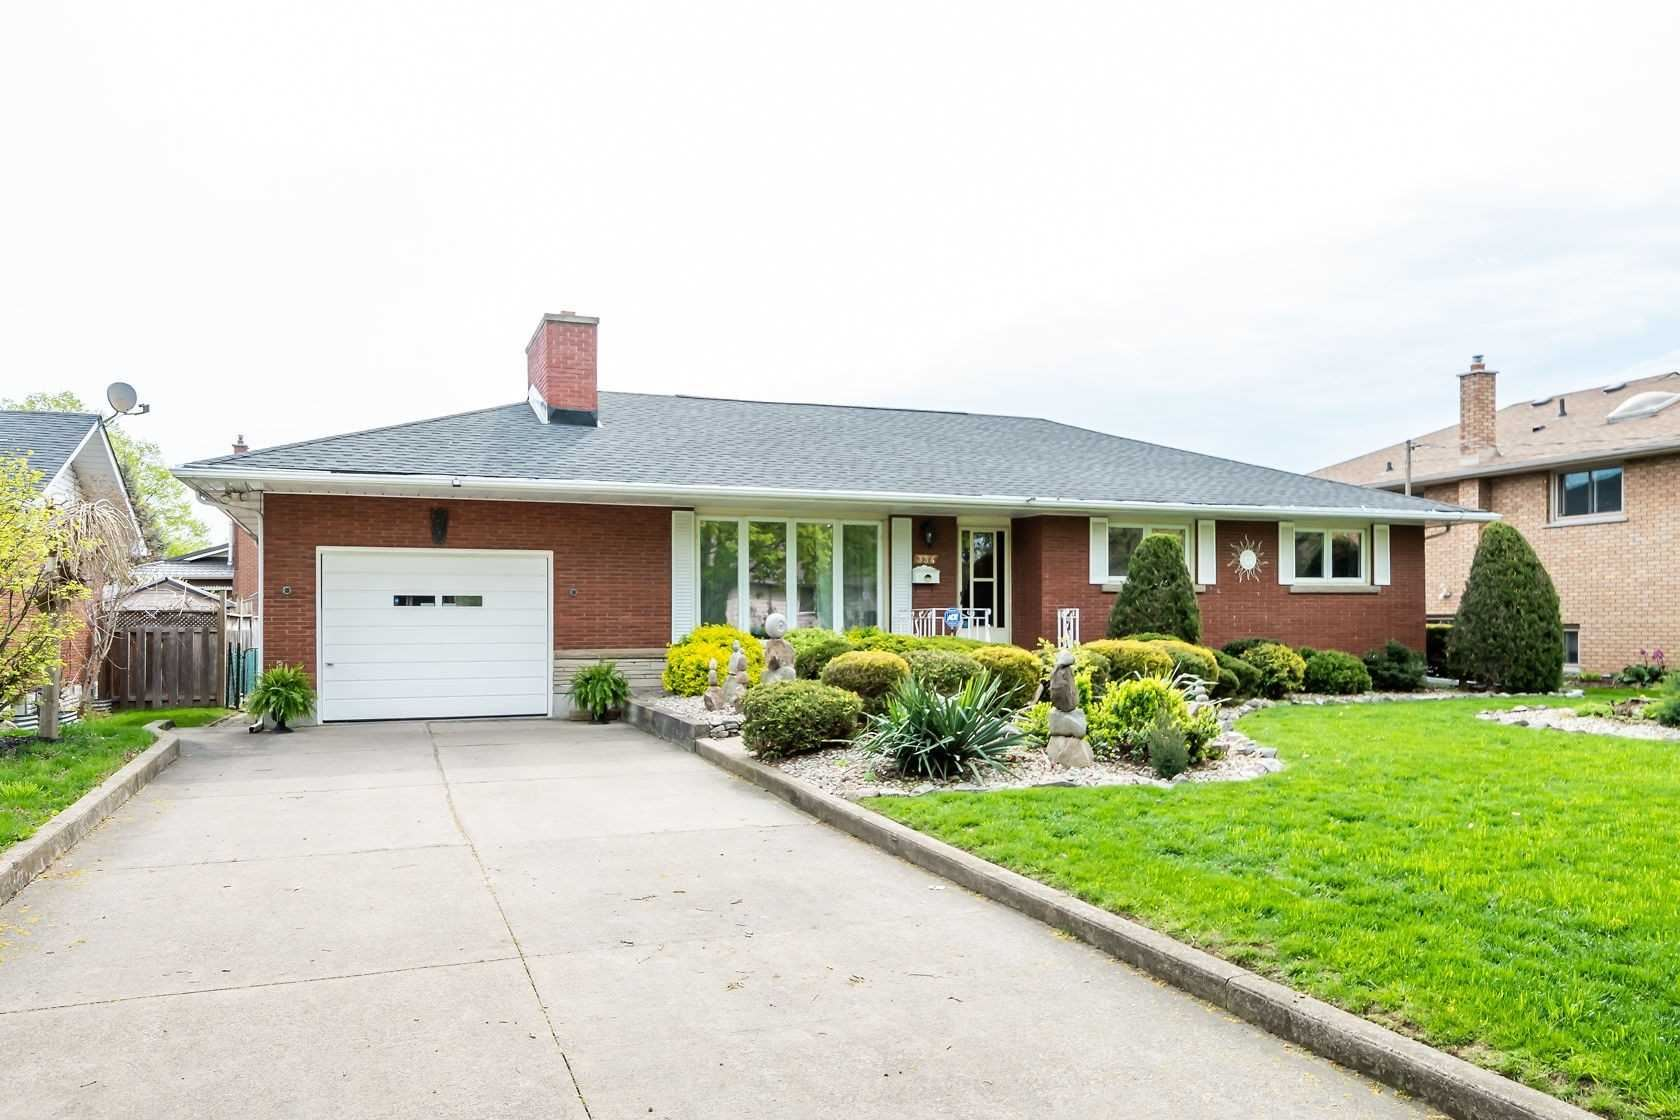 334 Grantham Ave, St. Catharines, ON L2M5A6 - MLS#: X5223756